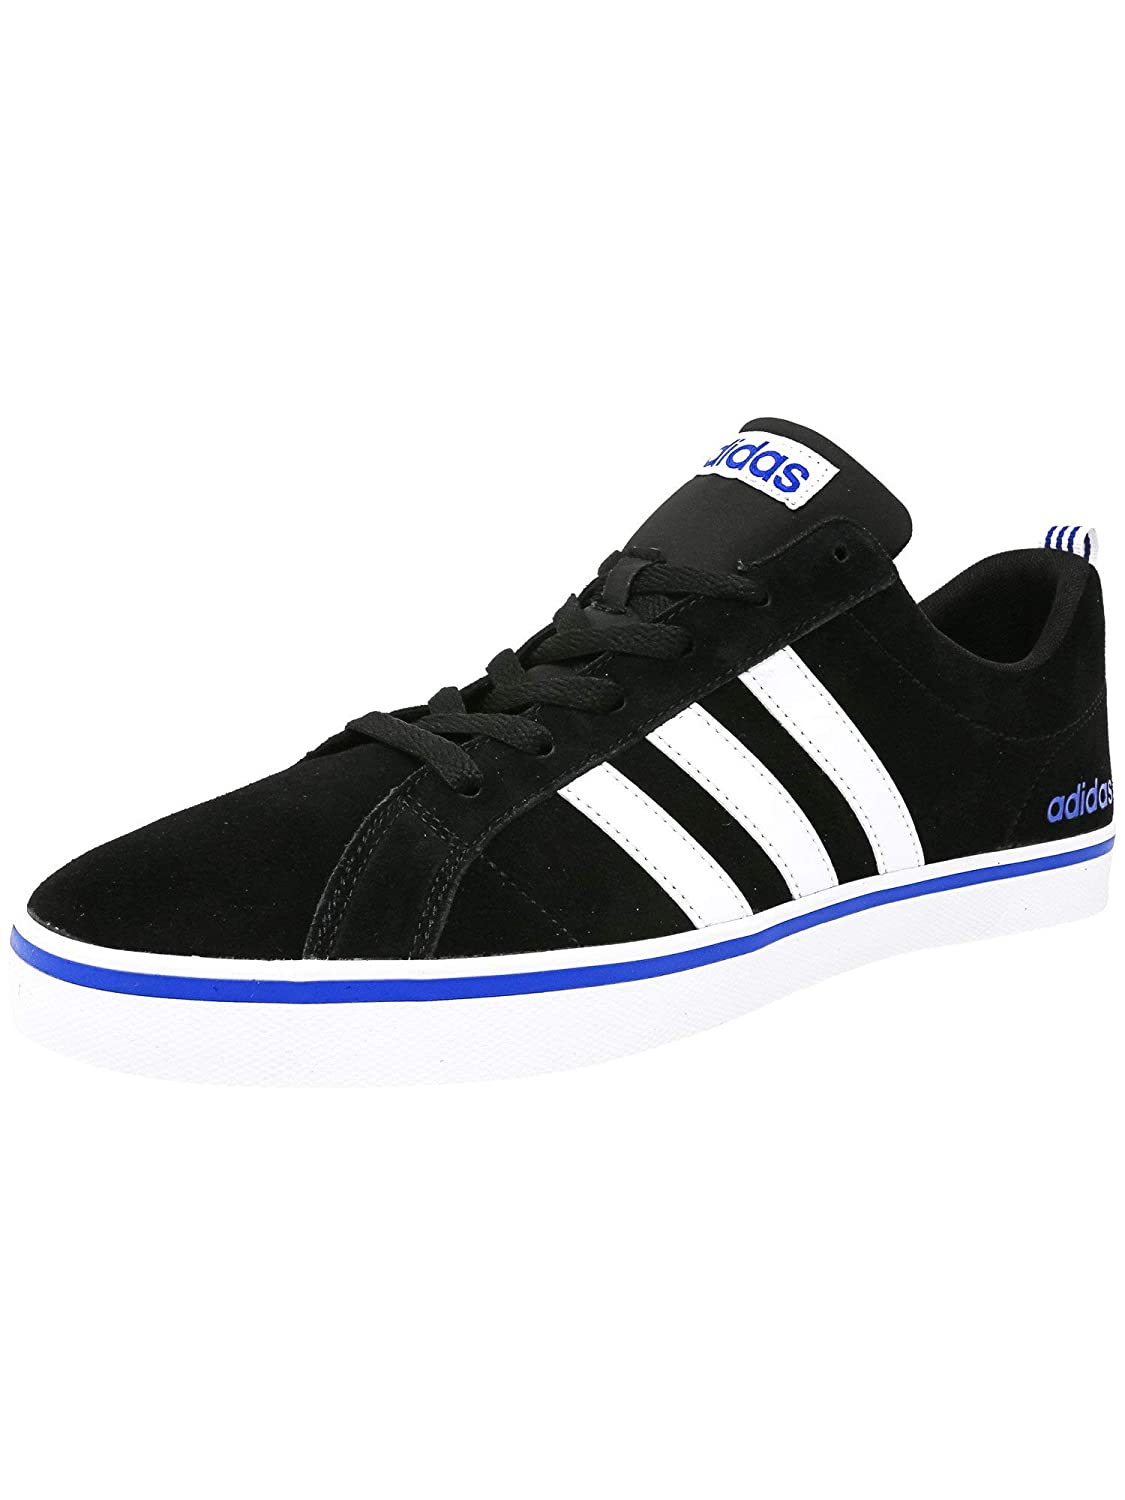 design de qualité fbd84 8c895 Amazon.com: Adidas Men's Pace Plus Ankle-High Fashion ...